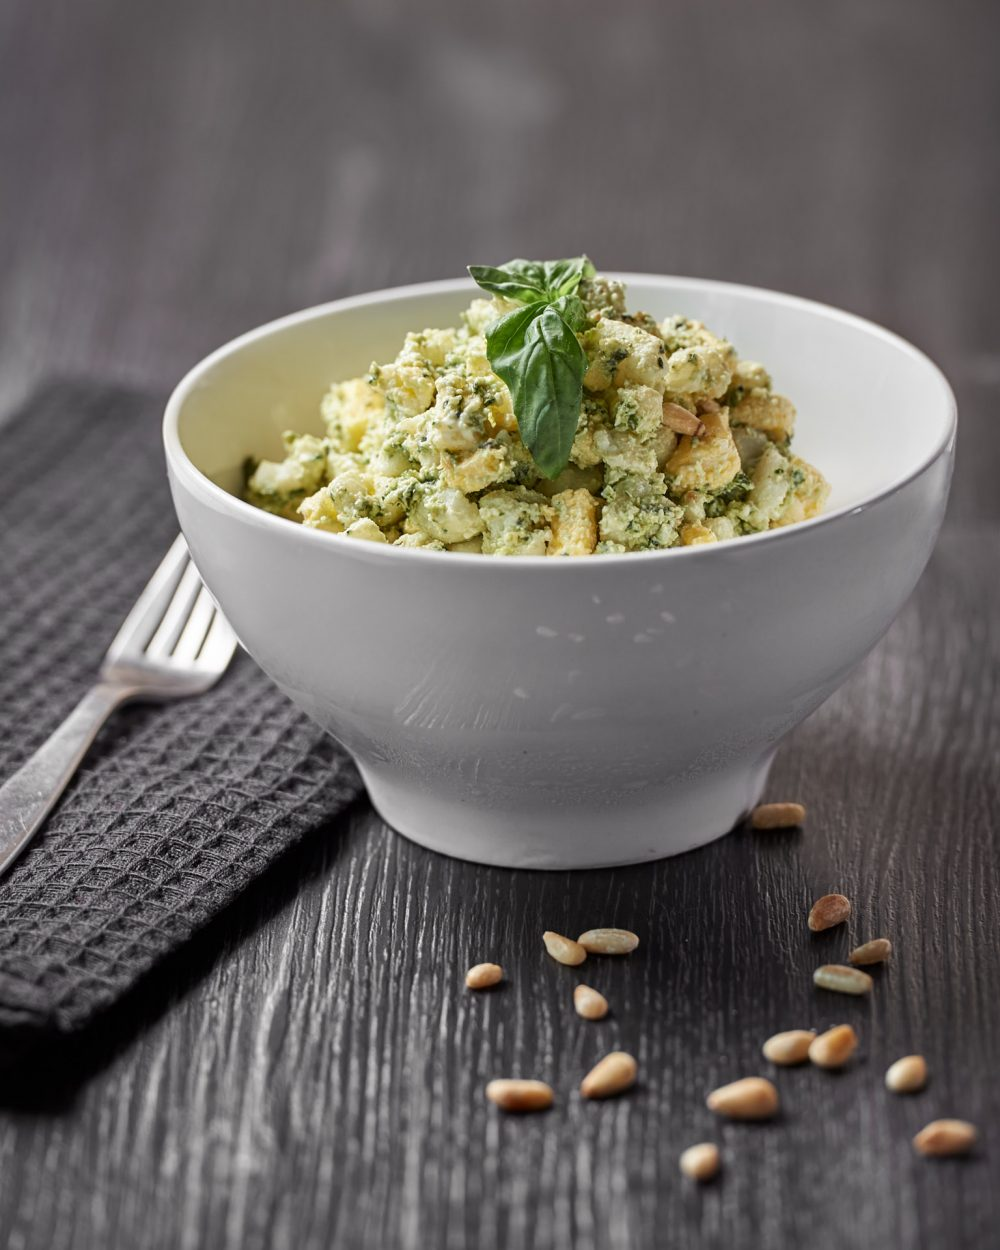 Food Photography of healthy scrambled egg breakfast with basil provided by egg solutions on a dark wood surface with scattered pine nuts Photographed by Brandon Marsh Photography